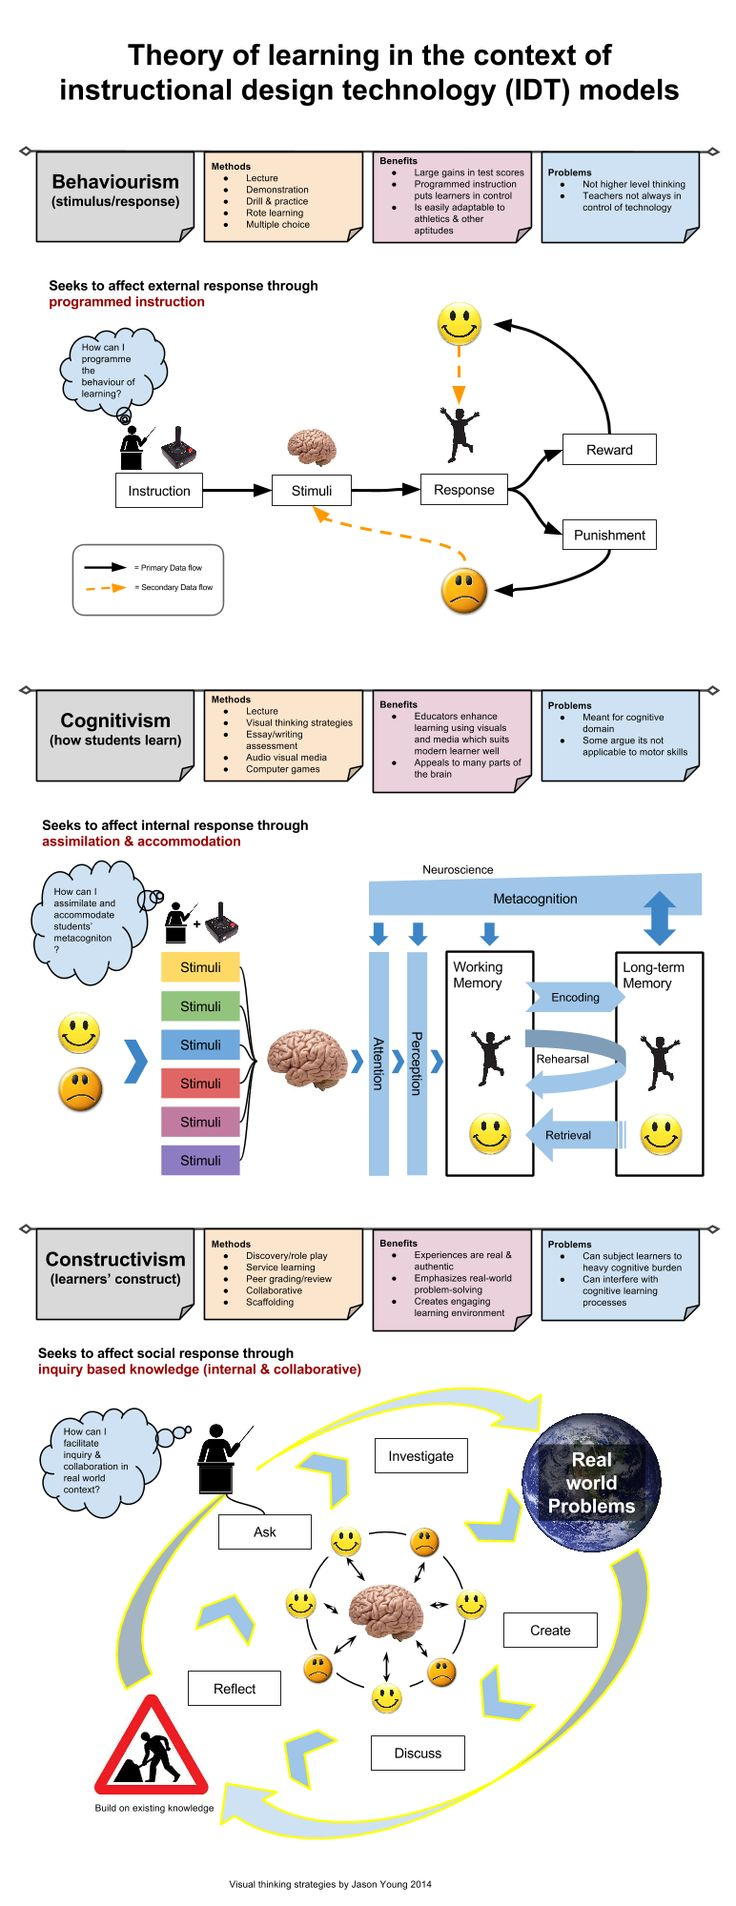 Visual thinking strategy (VTS) that attempts to explain the learning theories of behaviourism, cognitivism and constructivism in a contemporary way - part of my Masters in Instructional Design study.